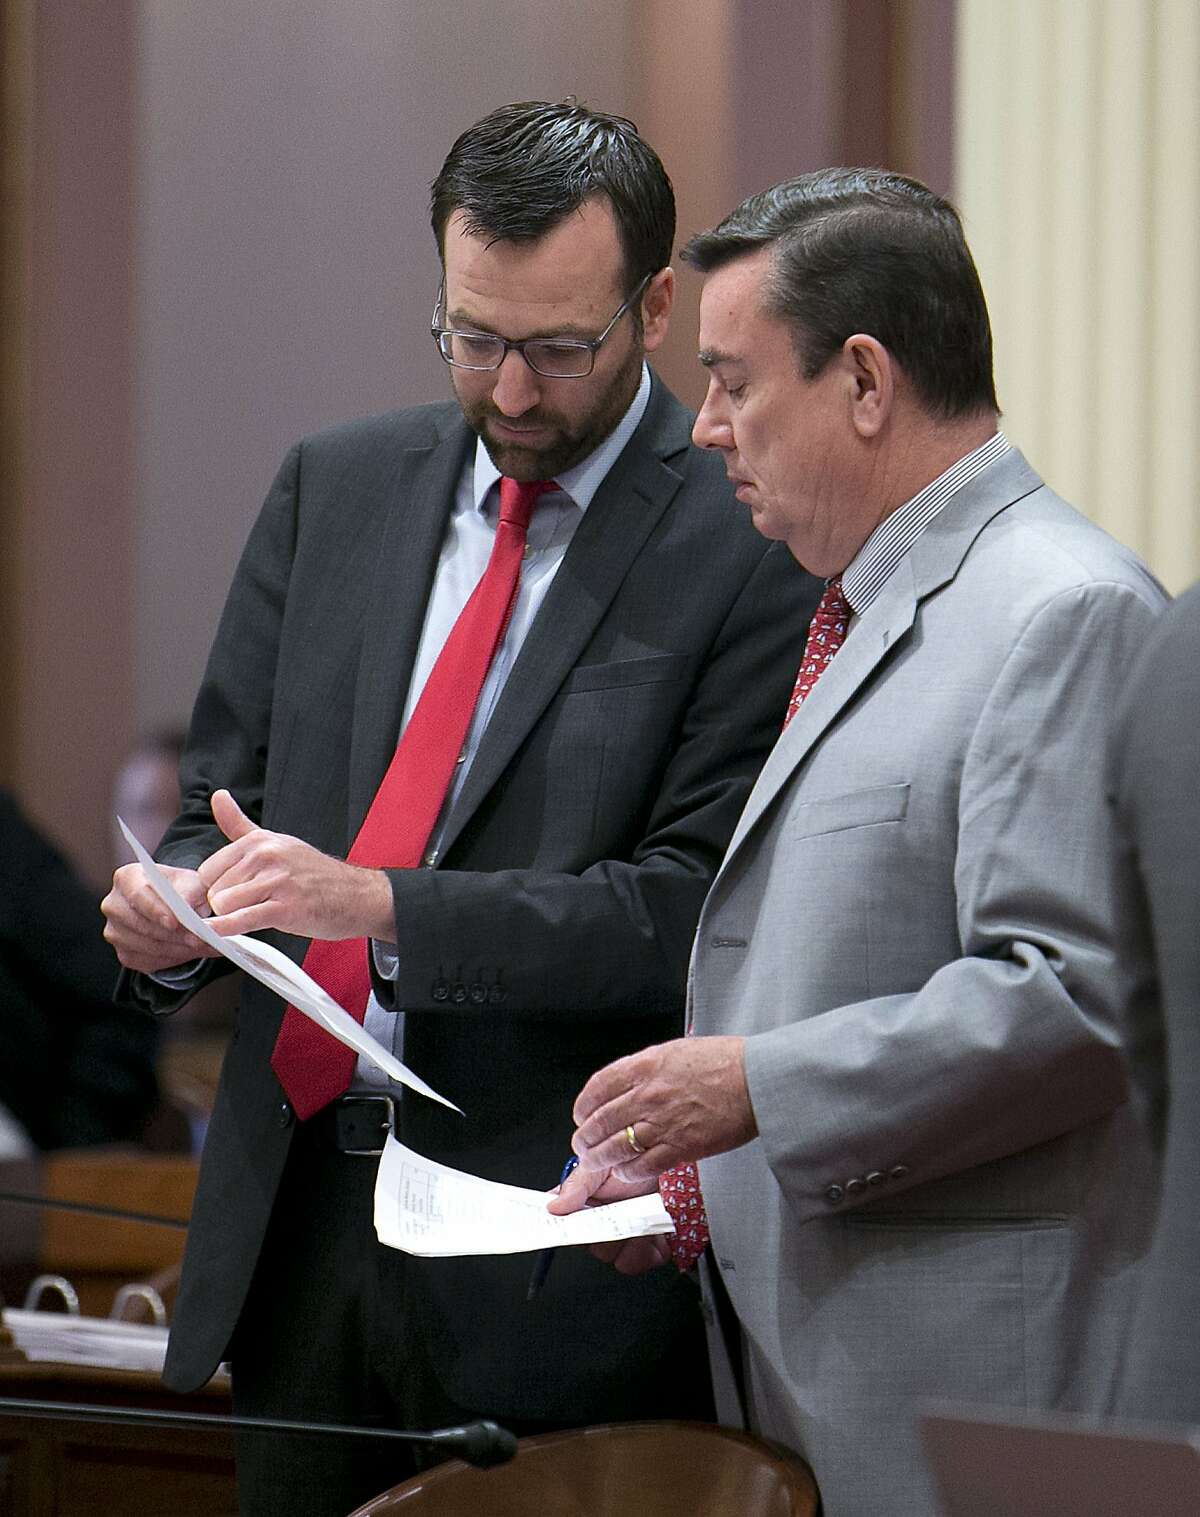 State Sen. Ben Allen, D-Santa Monica, left, discusses a bill with Sen. Joel Anderson, R-Alpine, at the Capitol, Thursday, June 1, 2017, in Sacramento, Calif. Lawmakers have until the end of this week to meet a deadline to have their bills passed out of the house of origination. (AP Photo/Rich Pedroncelli)